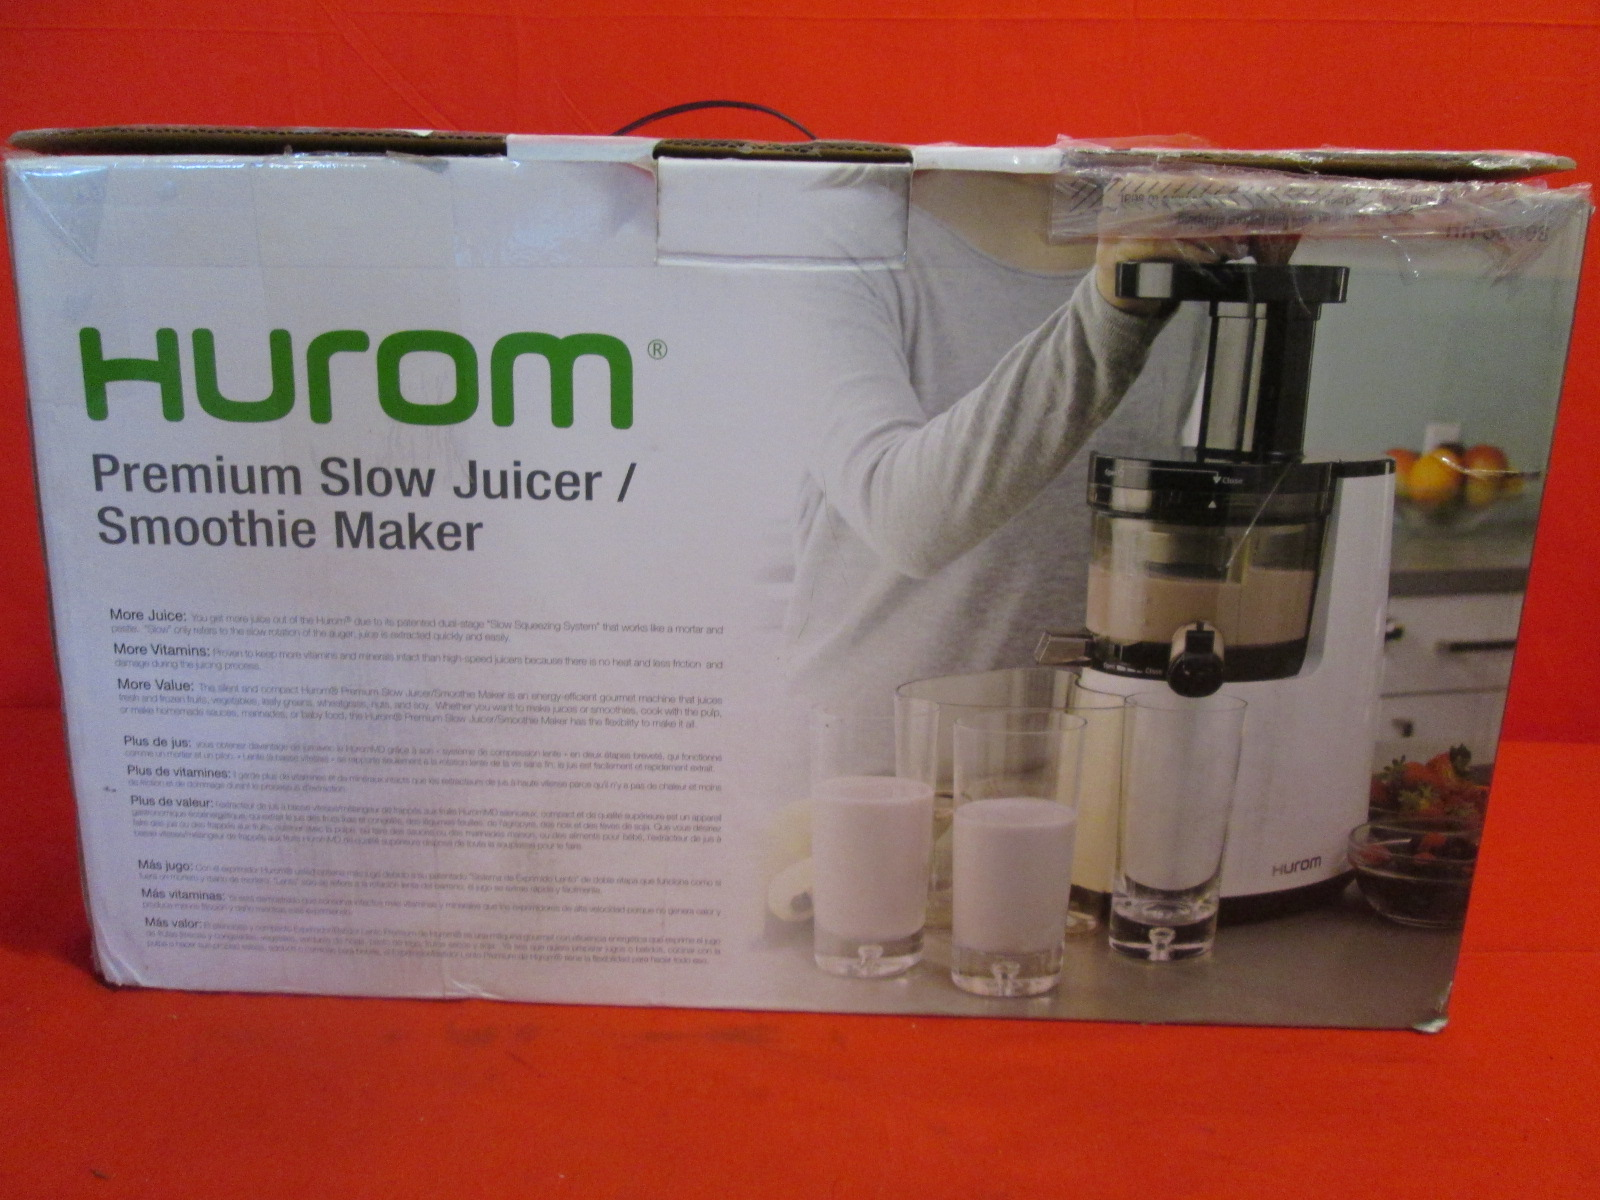 Hurom Premium Slow Juicer Hh Wbb07 : Hurom Premium Masticating Slow Juicer & Smoothie Maker HH-WBB07